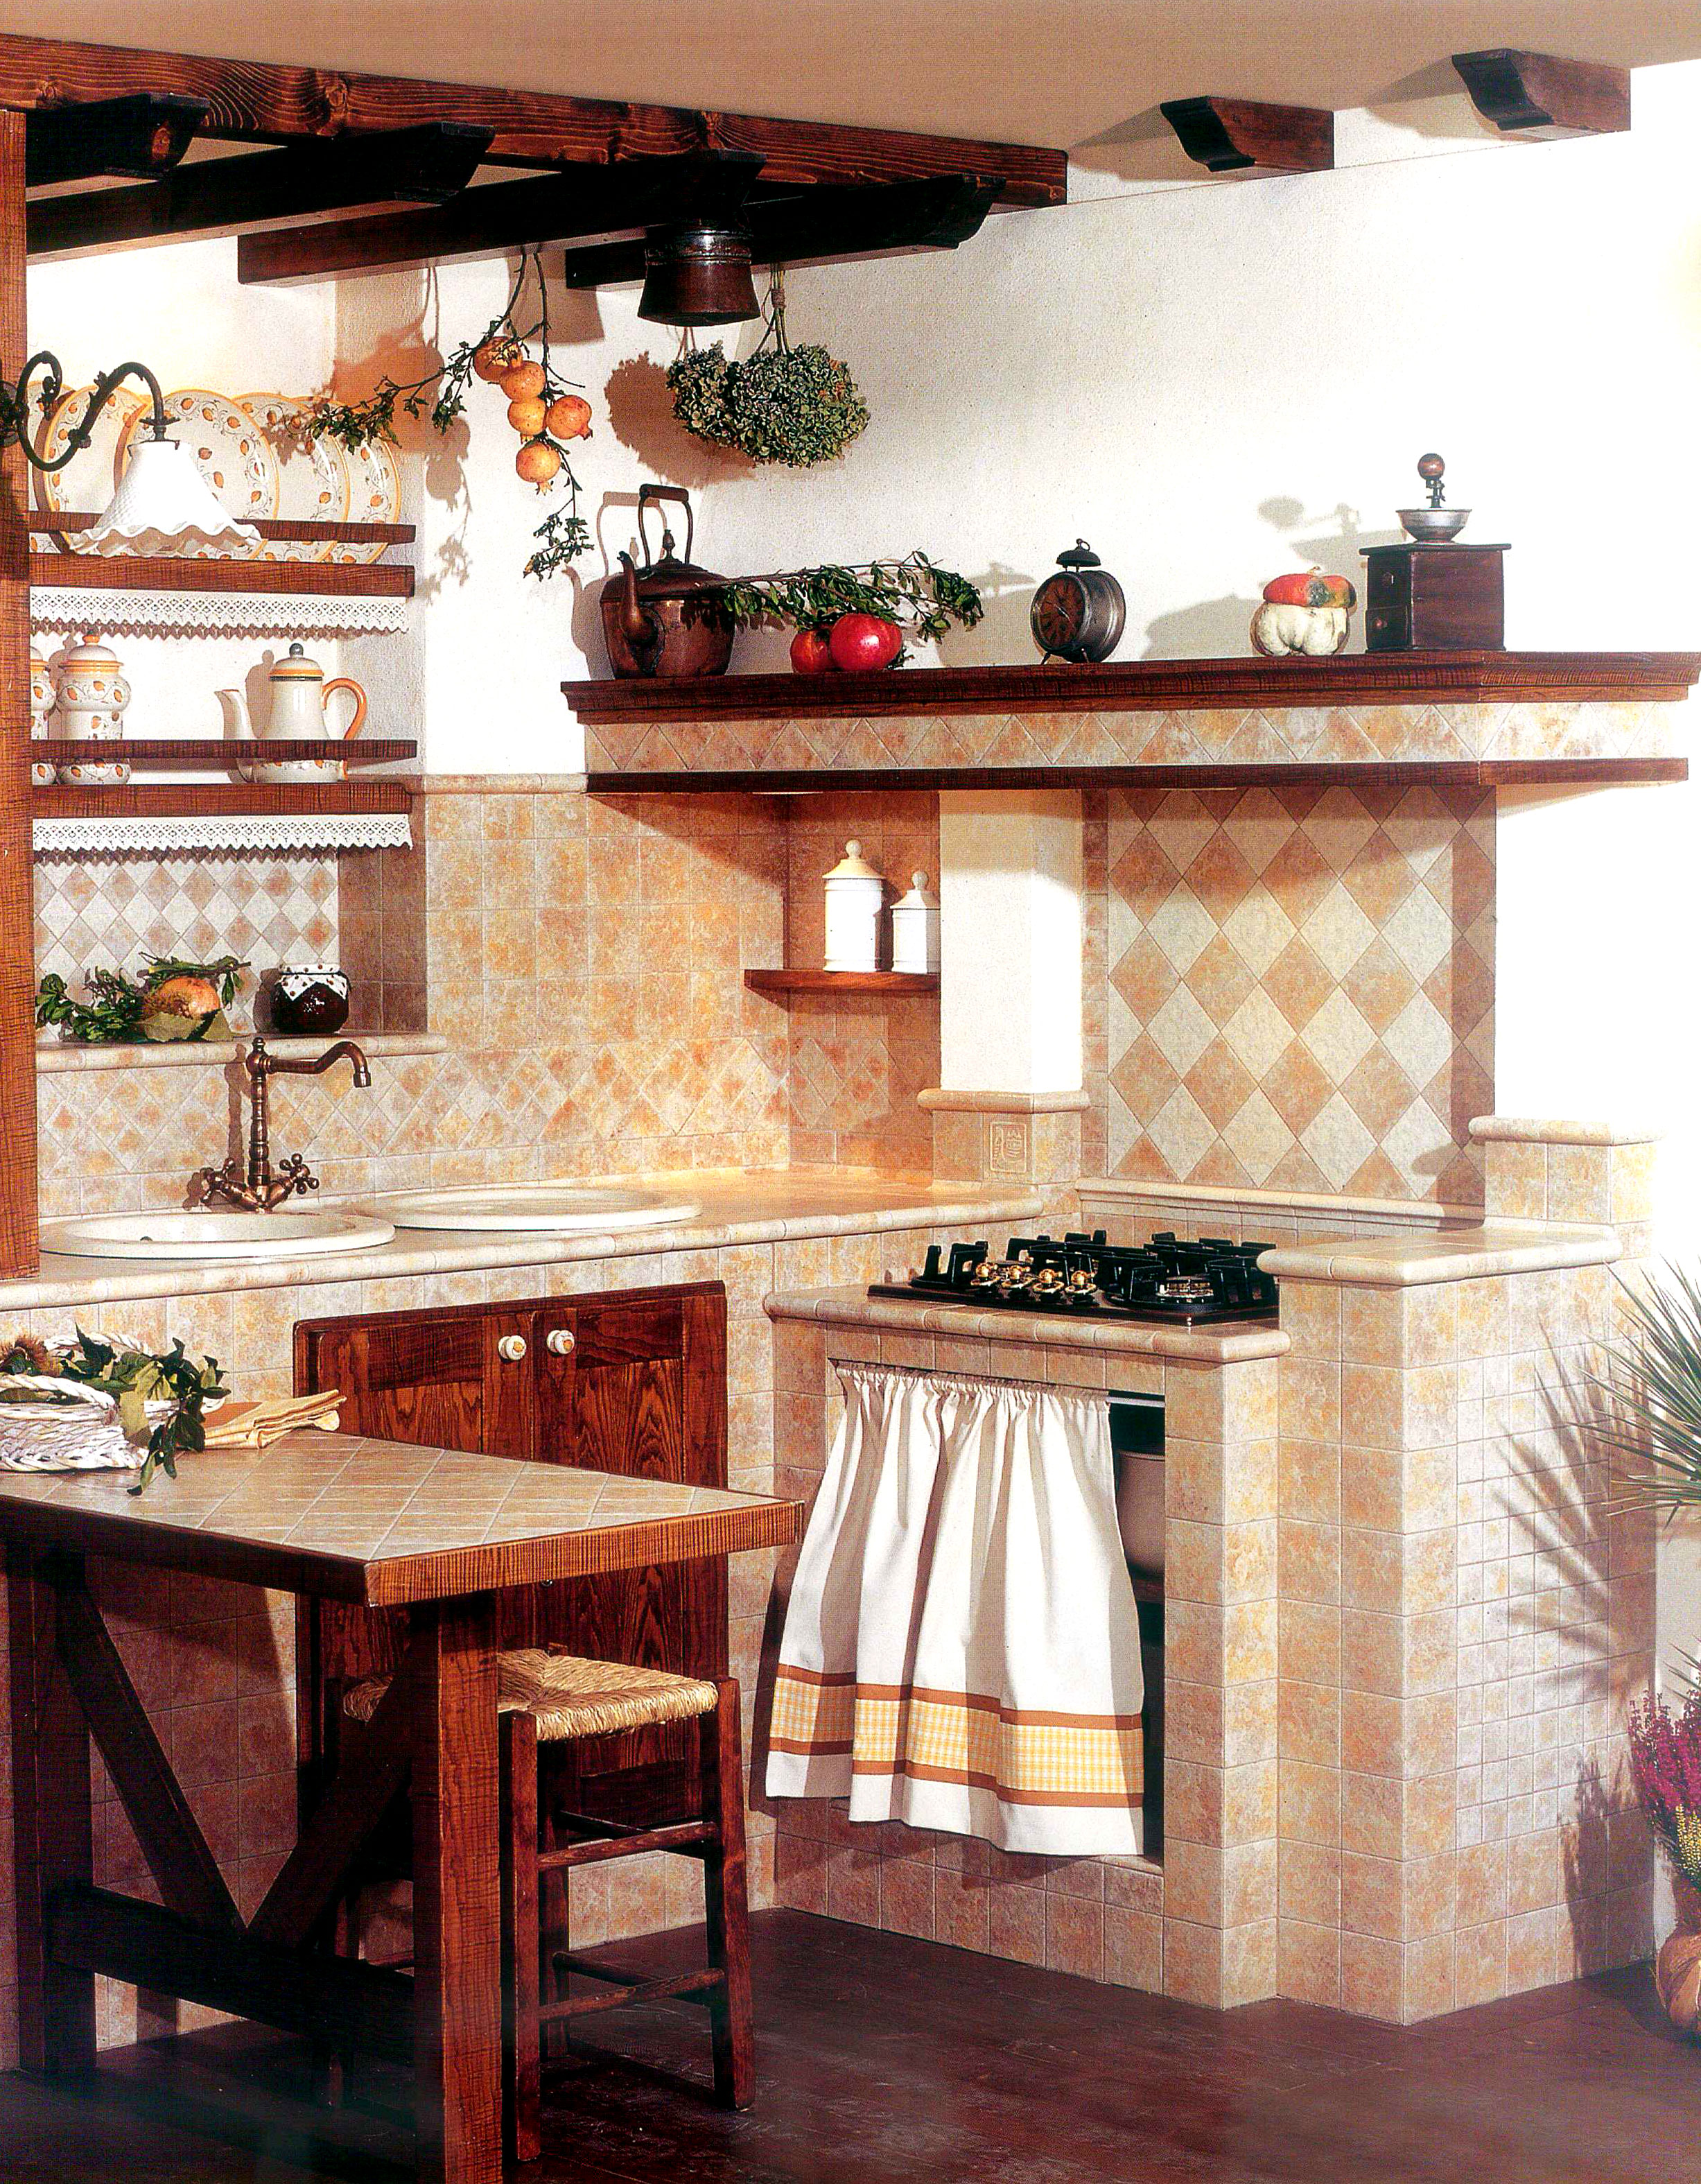 fliesen fu boden berzug badezimmer kochen beige braun 10x10 20x20 ebay. Black Bedroom Furniture Sets. Home Design Ideas